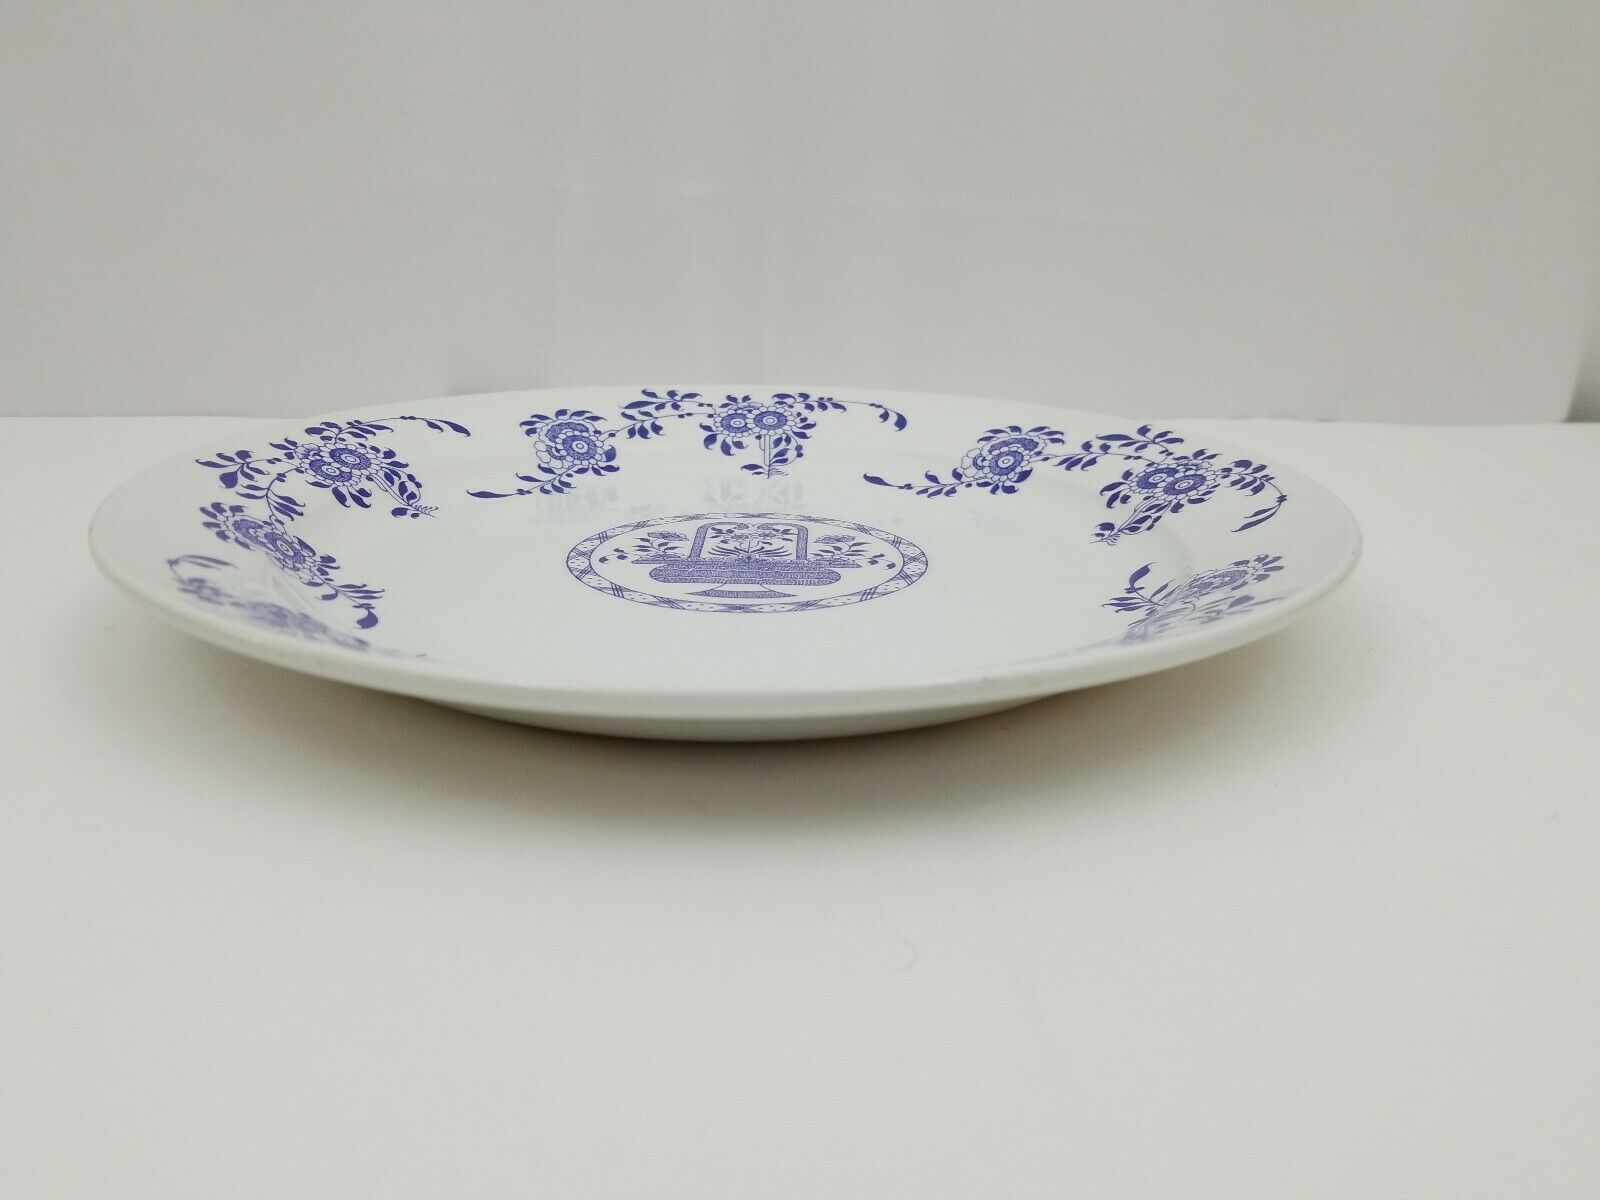 "Diamondstone Laveno White Chop Plate / Platter Ceramic Made in Italy 11.5"" image 8"